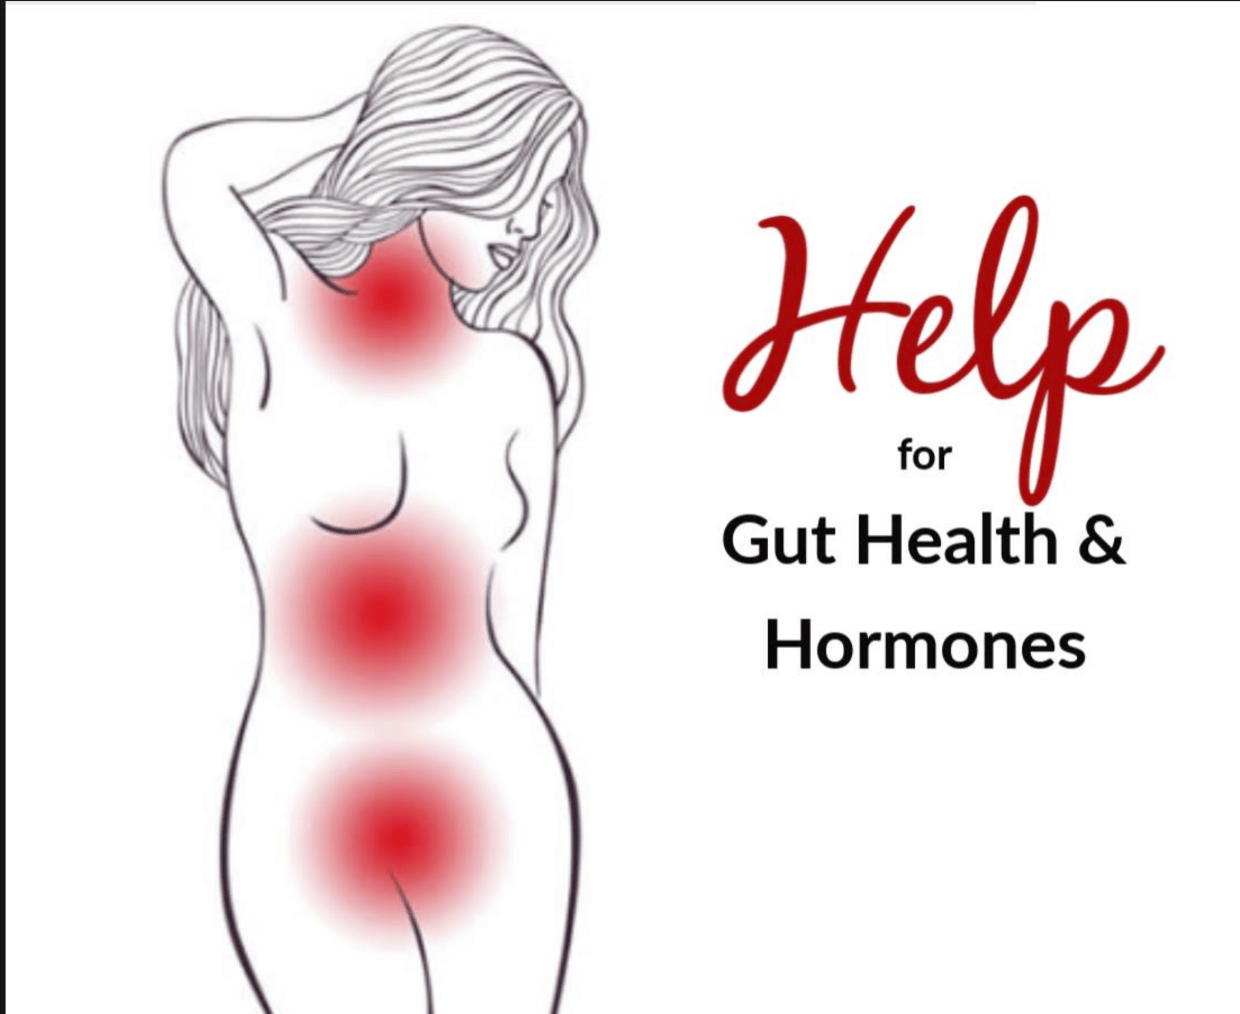 Gut Health and Hormones, and High Blood Pressure